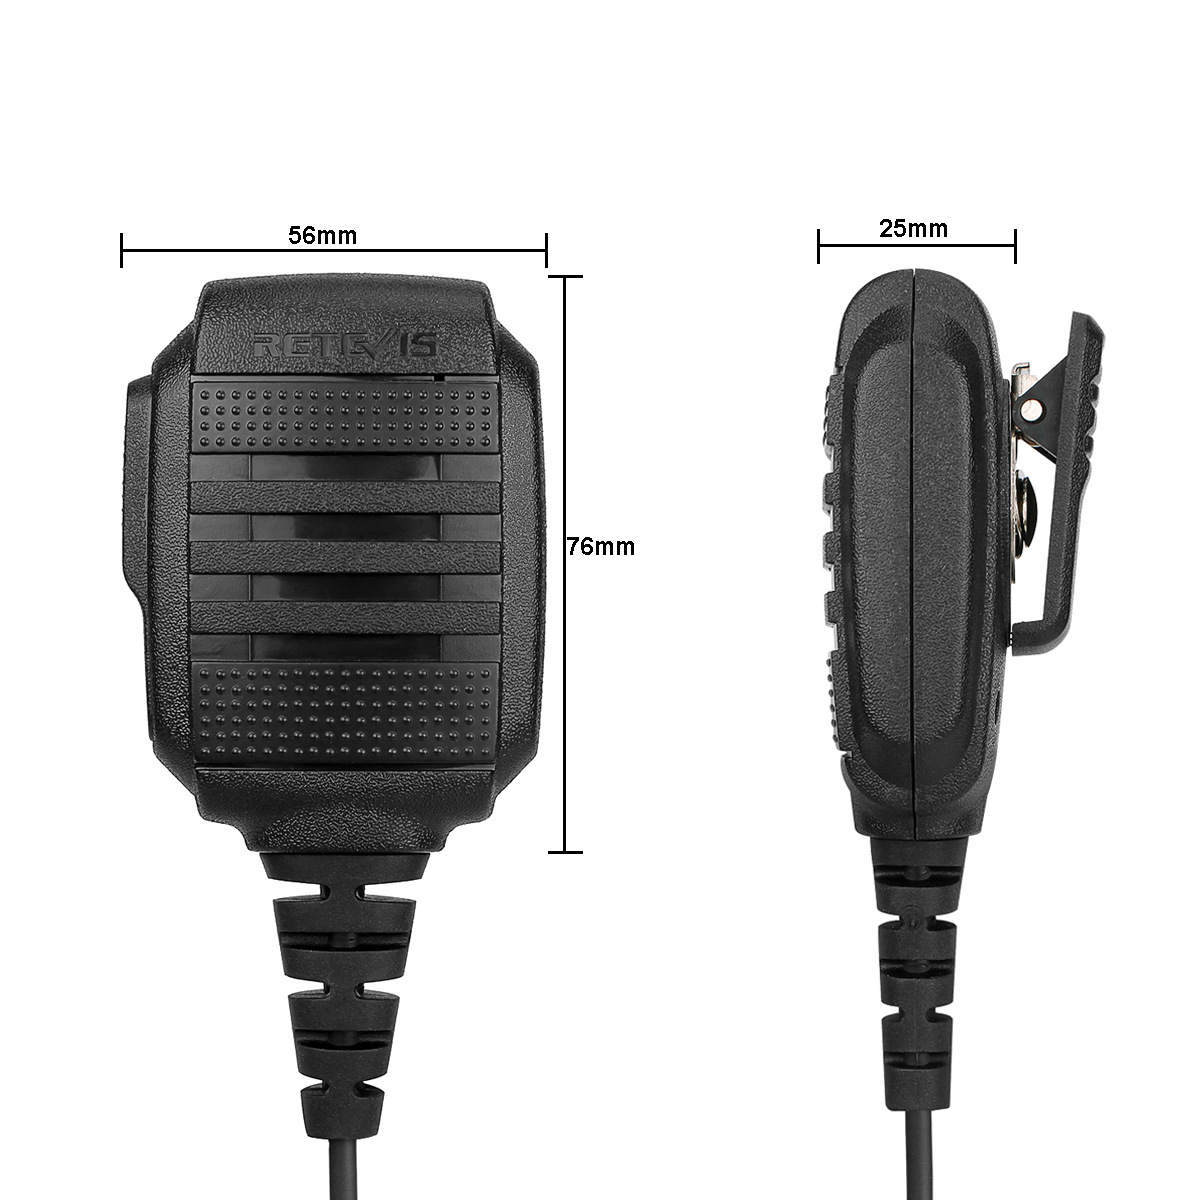 Retevis RS-114 IP54 Waterproof Speaker Microphone For Retevis H777 RT-5R RT22 Baofeng UV-5R UV-82 888s Walkie Talkie Accessory